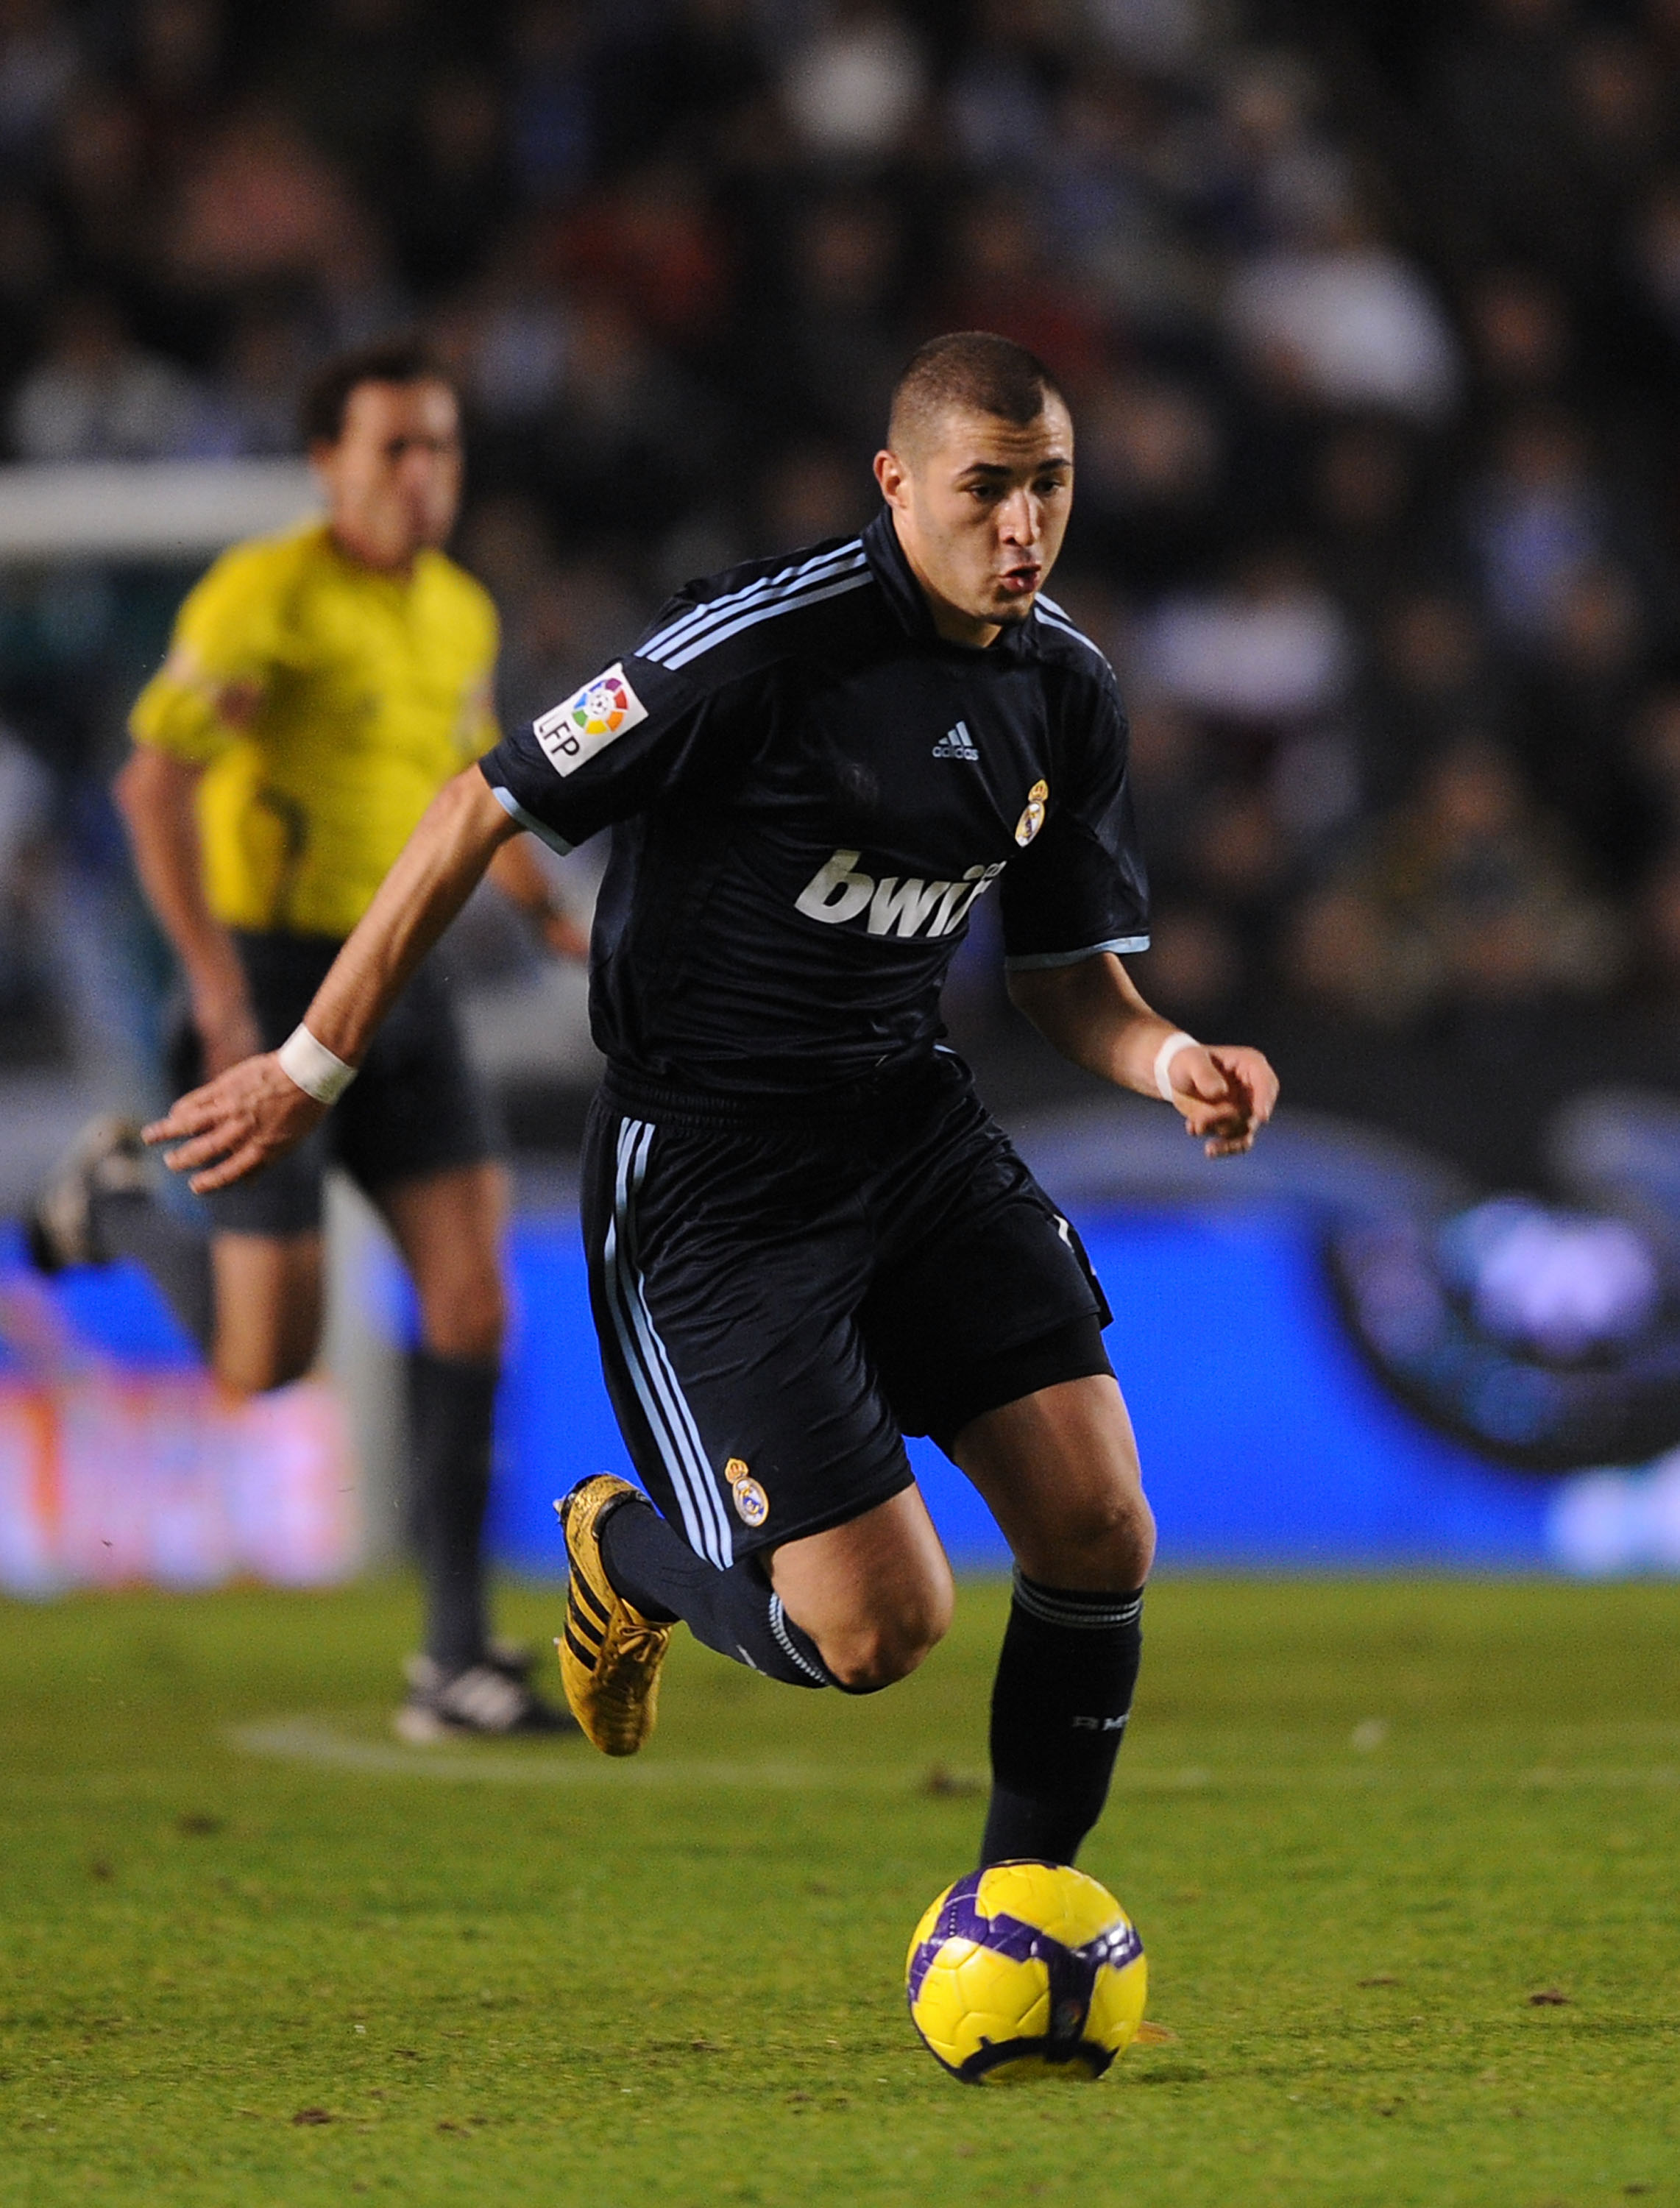 LA CORUNA, SPAIN - JANUARY 30:  Karim Benzema of Real Madrid in action during the La Liga match between Real Madrid and Deportivo La Coruna at the Riazor Stadium on January 30, 2010 in La Coruna, Spain.  (Photo by Denis Doyle/Getty Images)